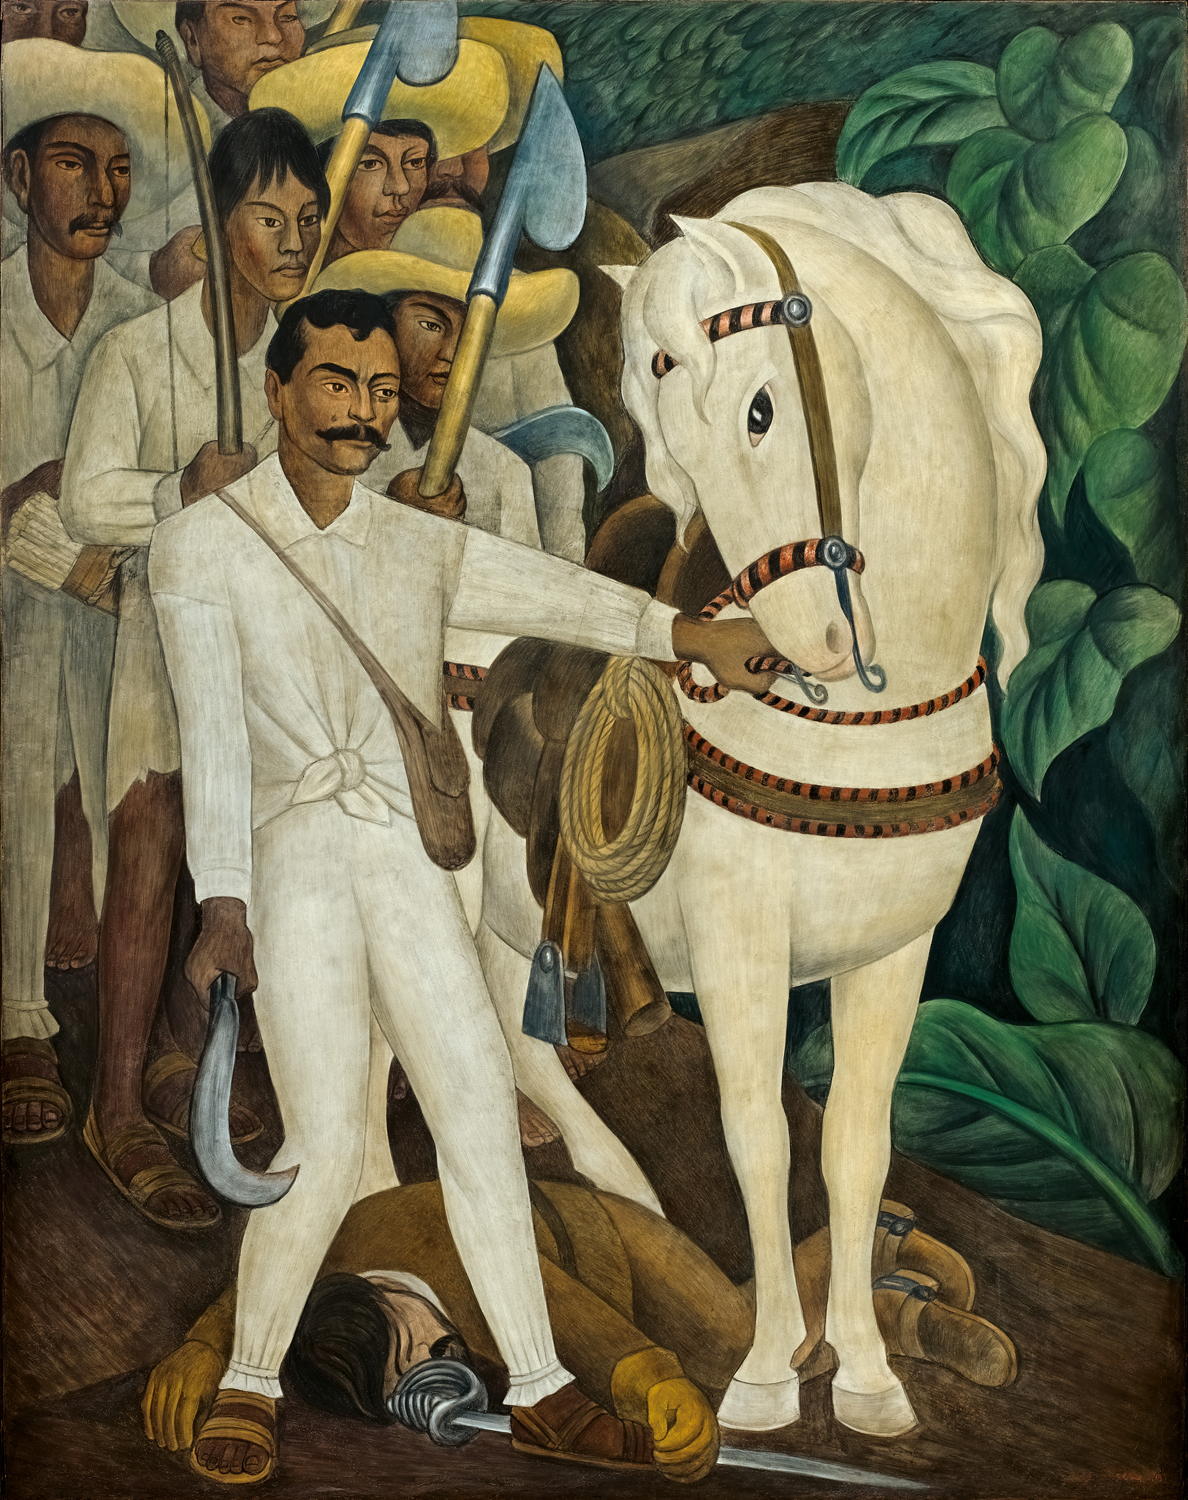 Agrarian leader zapata murals for the museum of modern art for Diego rivera mural